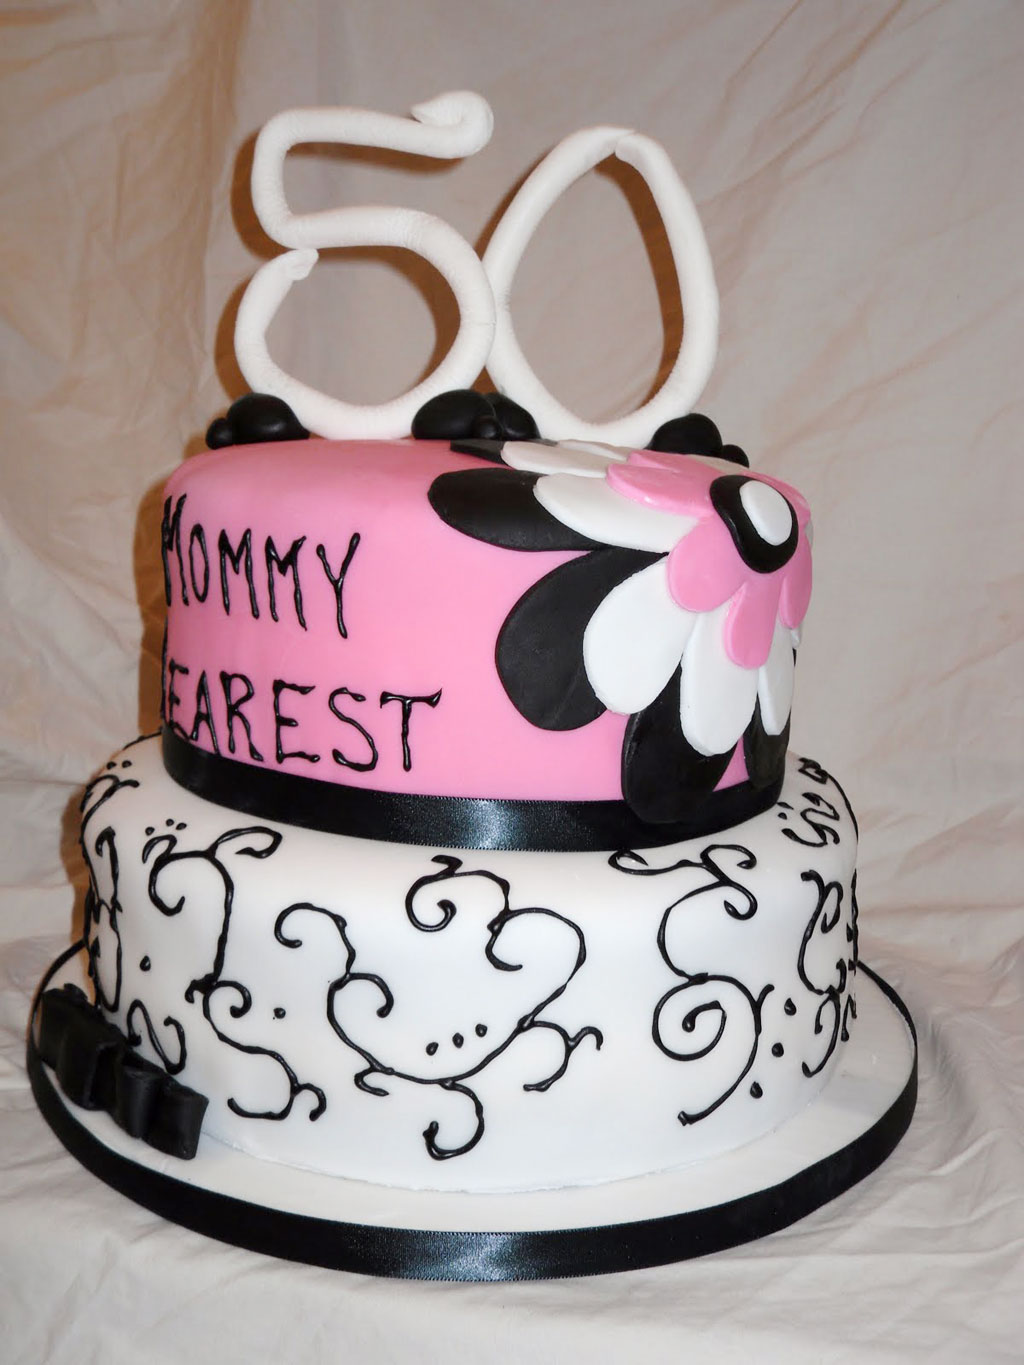 Free Cake Ideas For 50th Birthday